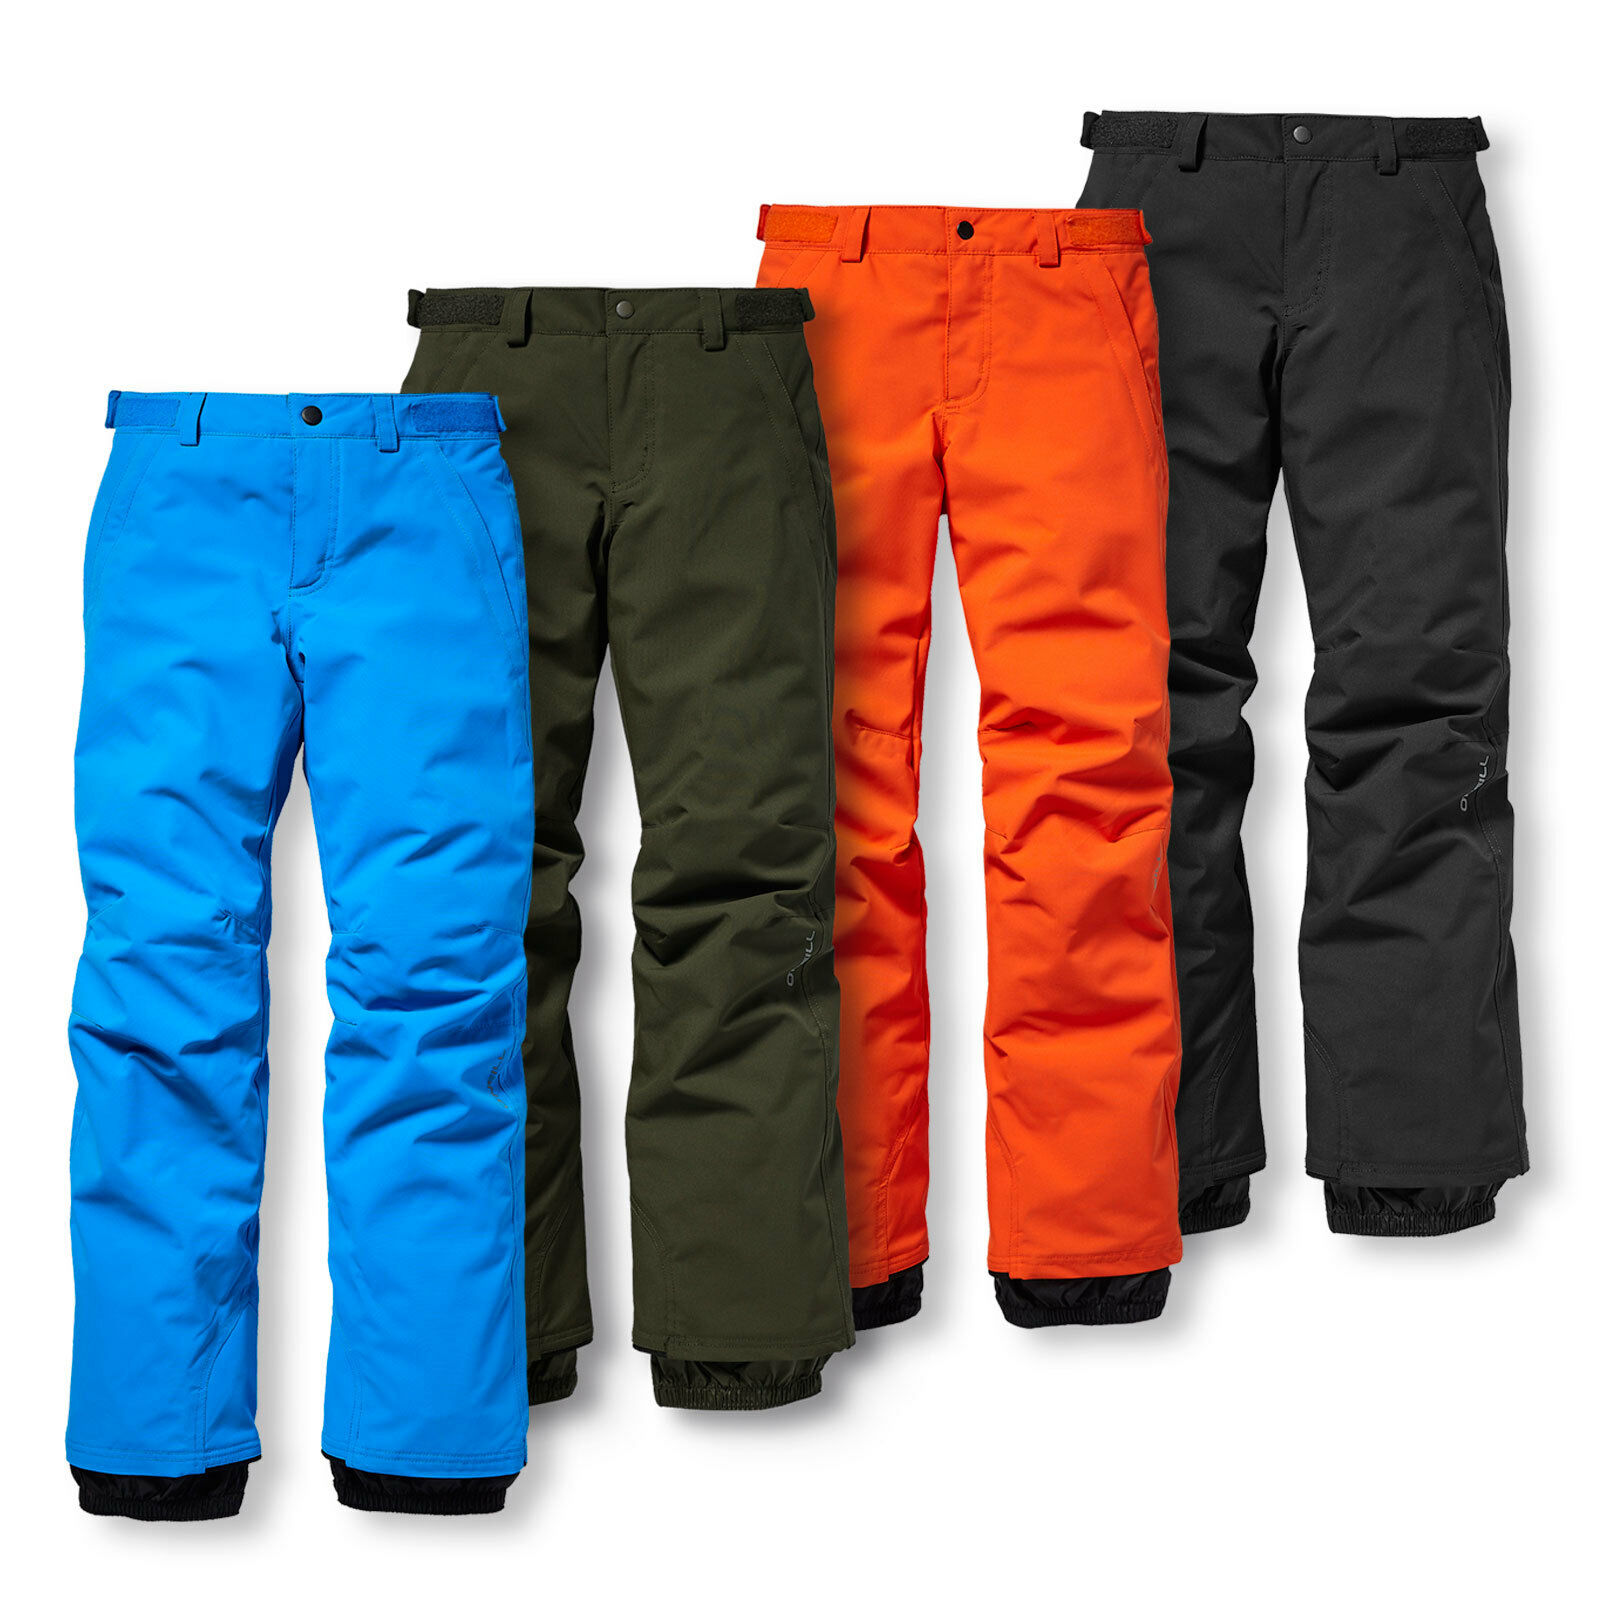 O'Neill Jungen Skihose Snowboardhose Snow Pants Anvil Pants Farbwahl